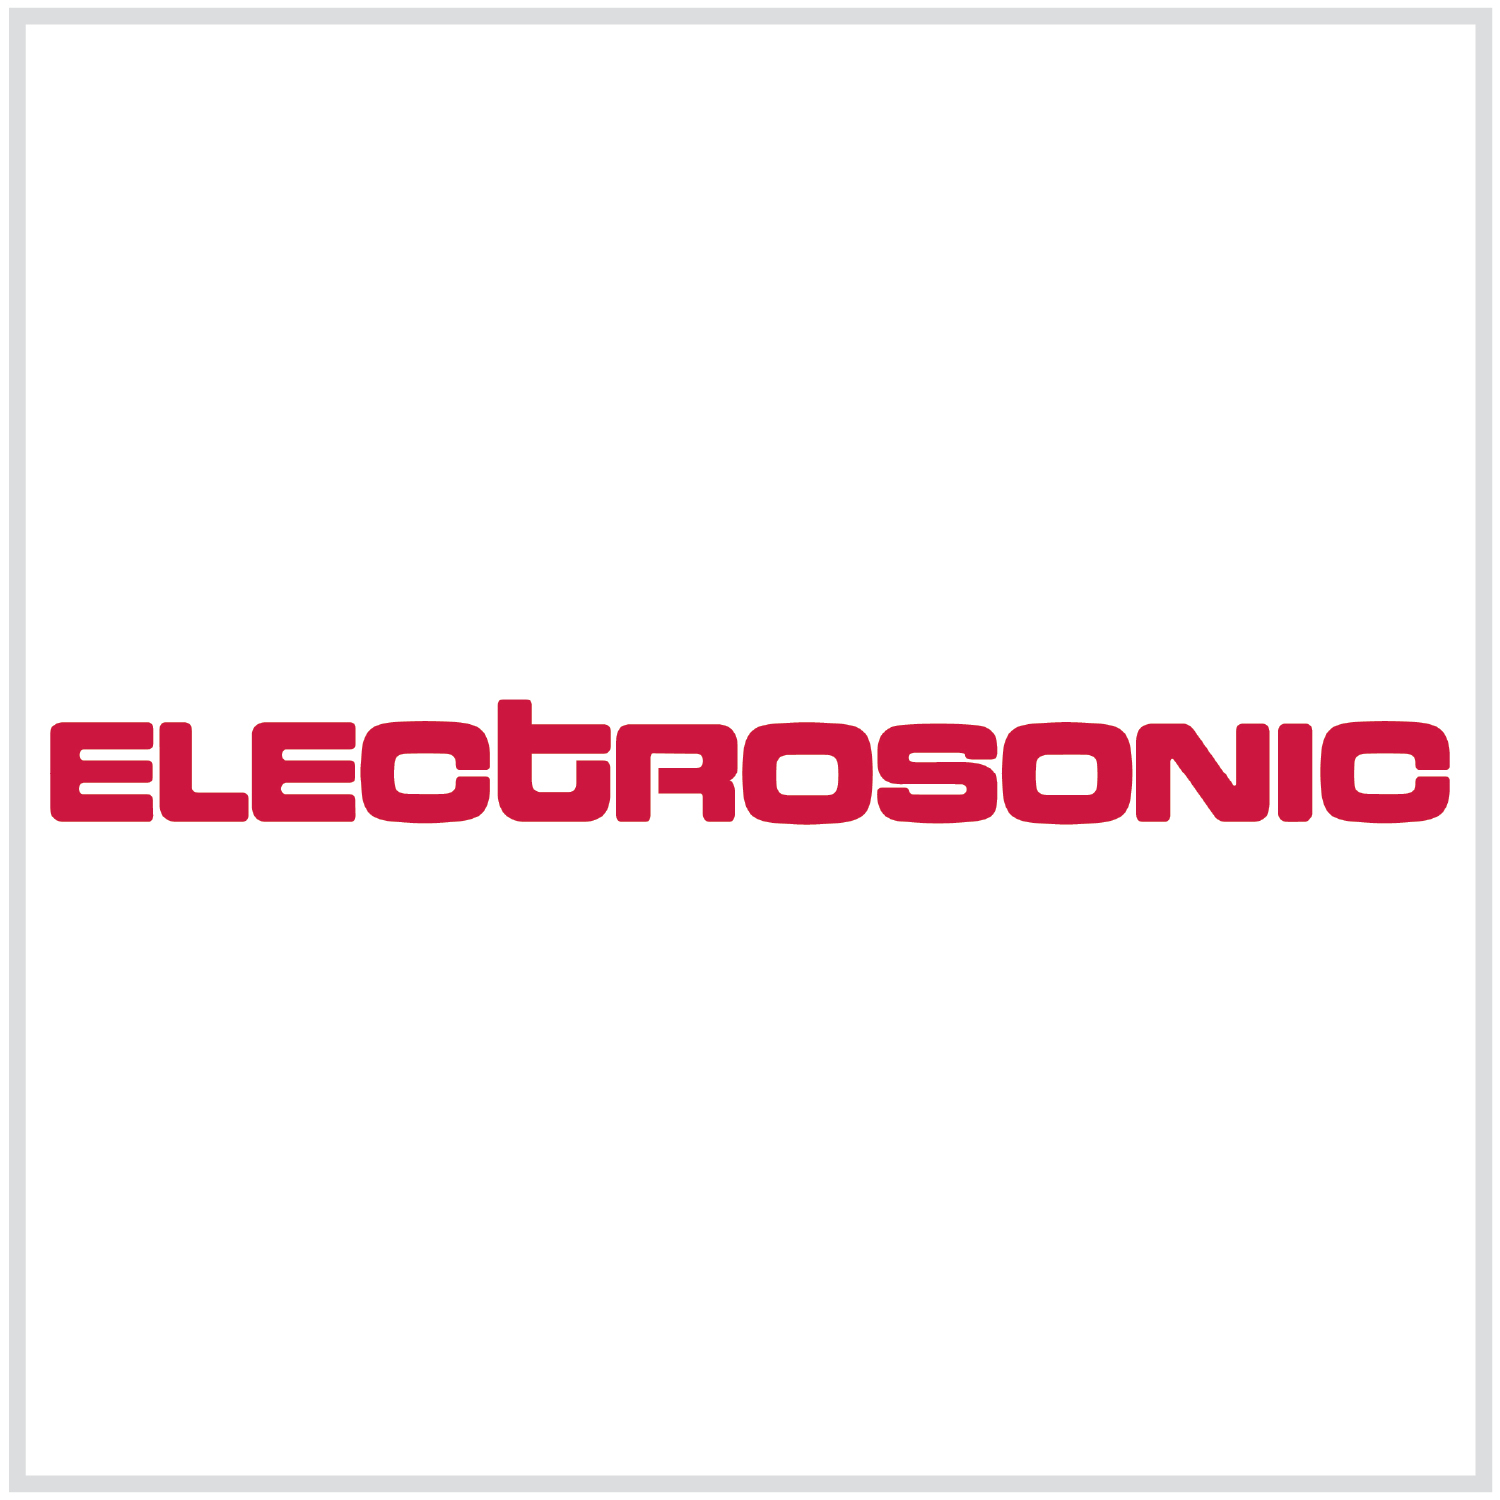 Electrosonic  Electrosonic is a provider of audio, video and control systems for museums, theme parks and visitor centers. Electrosonic offers the security of working with a stable and well-organized operation that has extensive international experience in systems design and contracting. Electrosonic specializes in interpreting client requirements, meeting budgets and turning audio-visual and media needs into integrated systems that engage, excite, and operate reliably in every environment. From simple projection and display systems to interactive stations and 4D theaters, Electrosonic will provide you with the technology that complements the work being seen and heard.